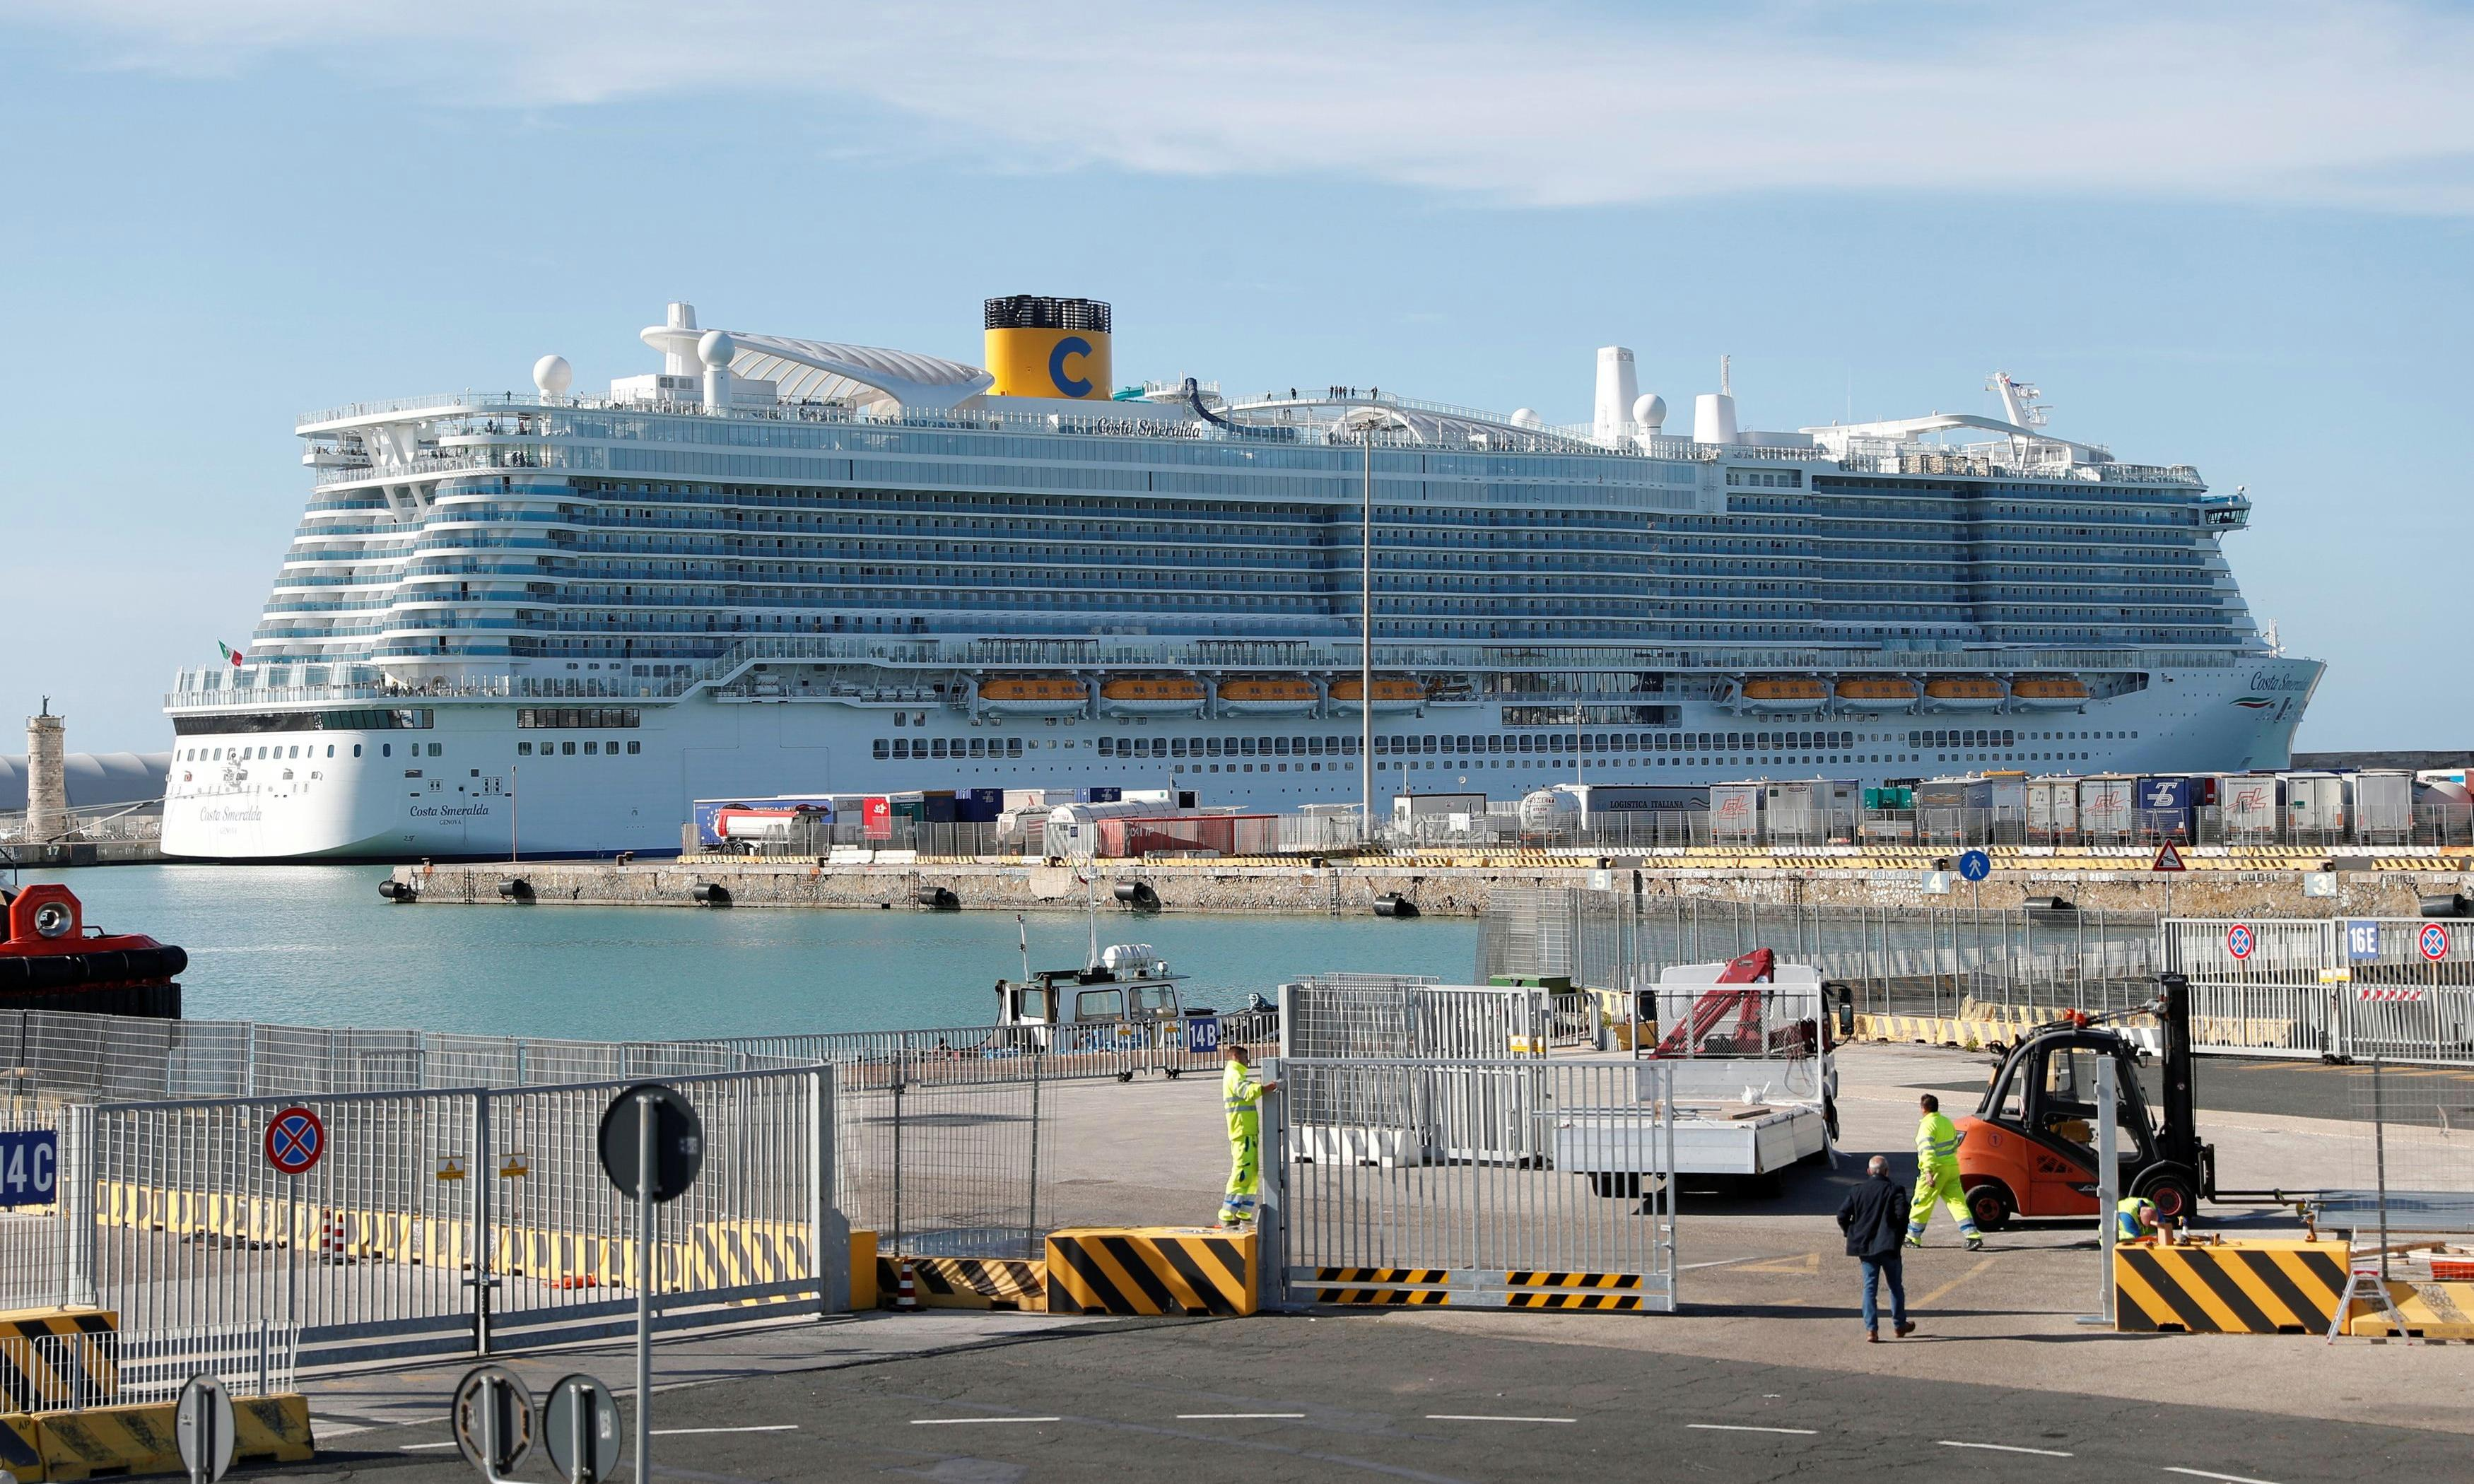 6,000 passengers stuck on cruise ship in Italy over coronavirus fears